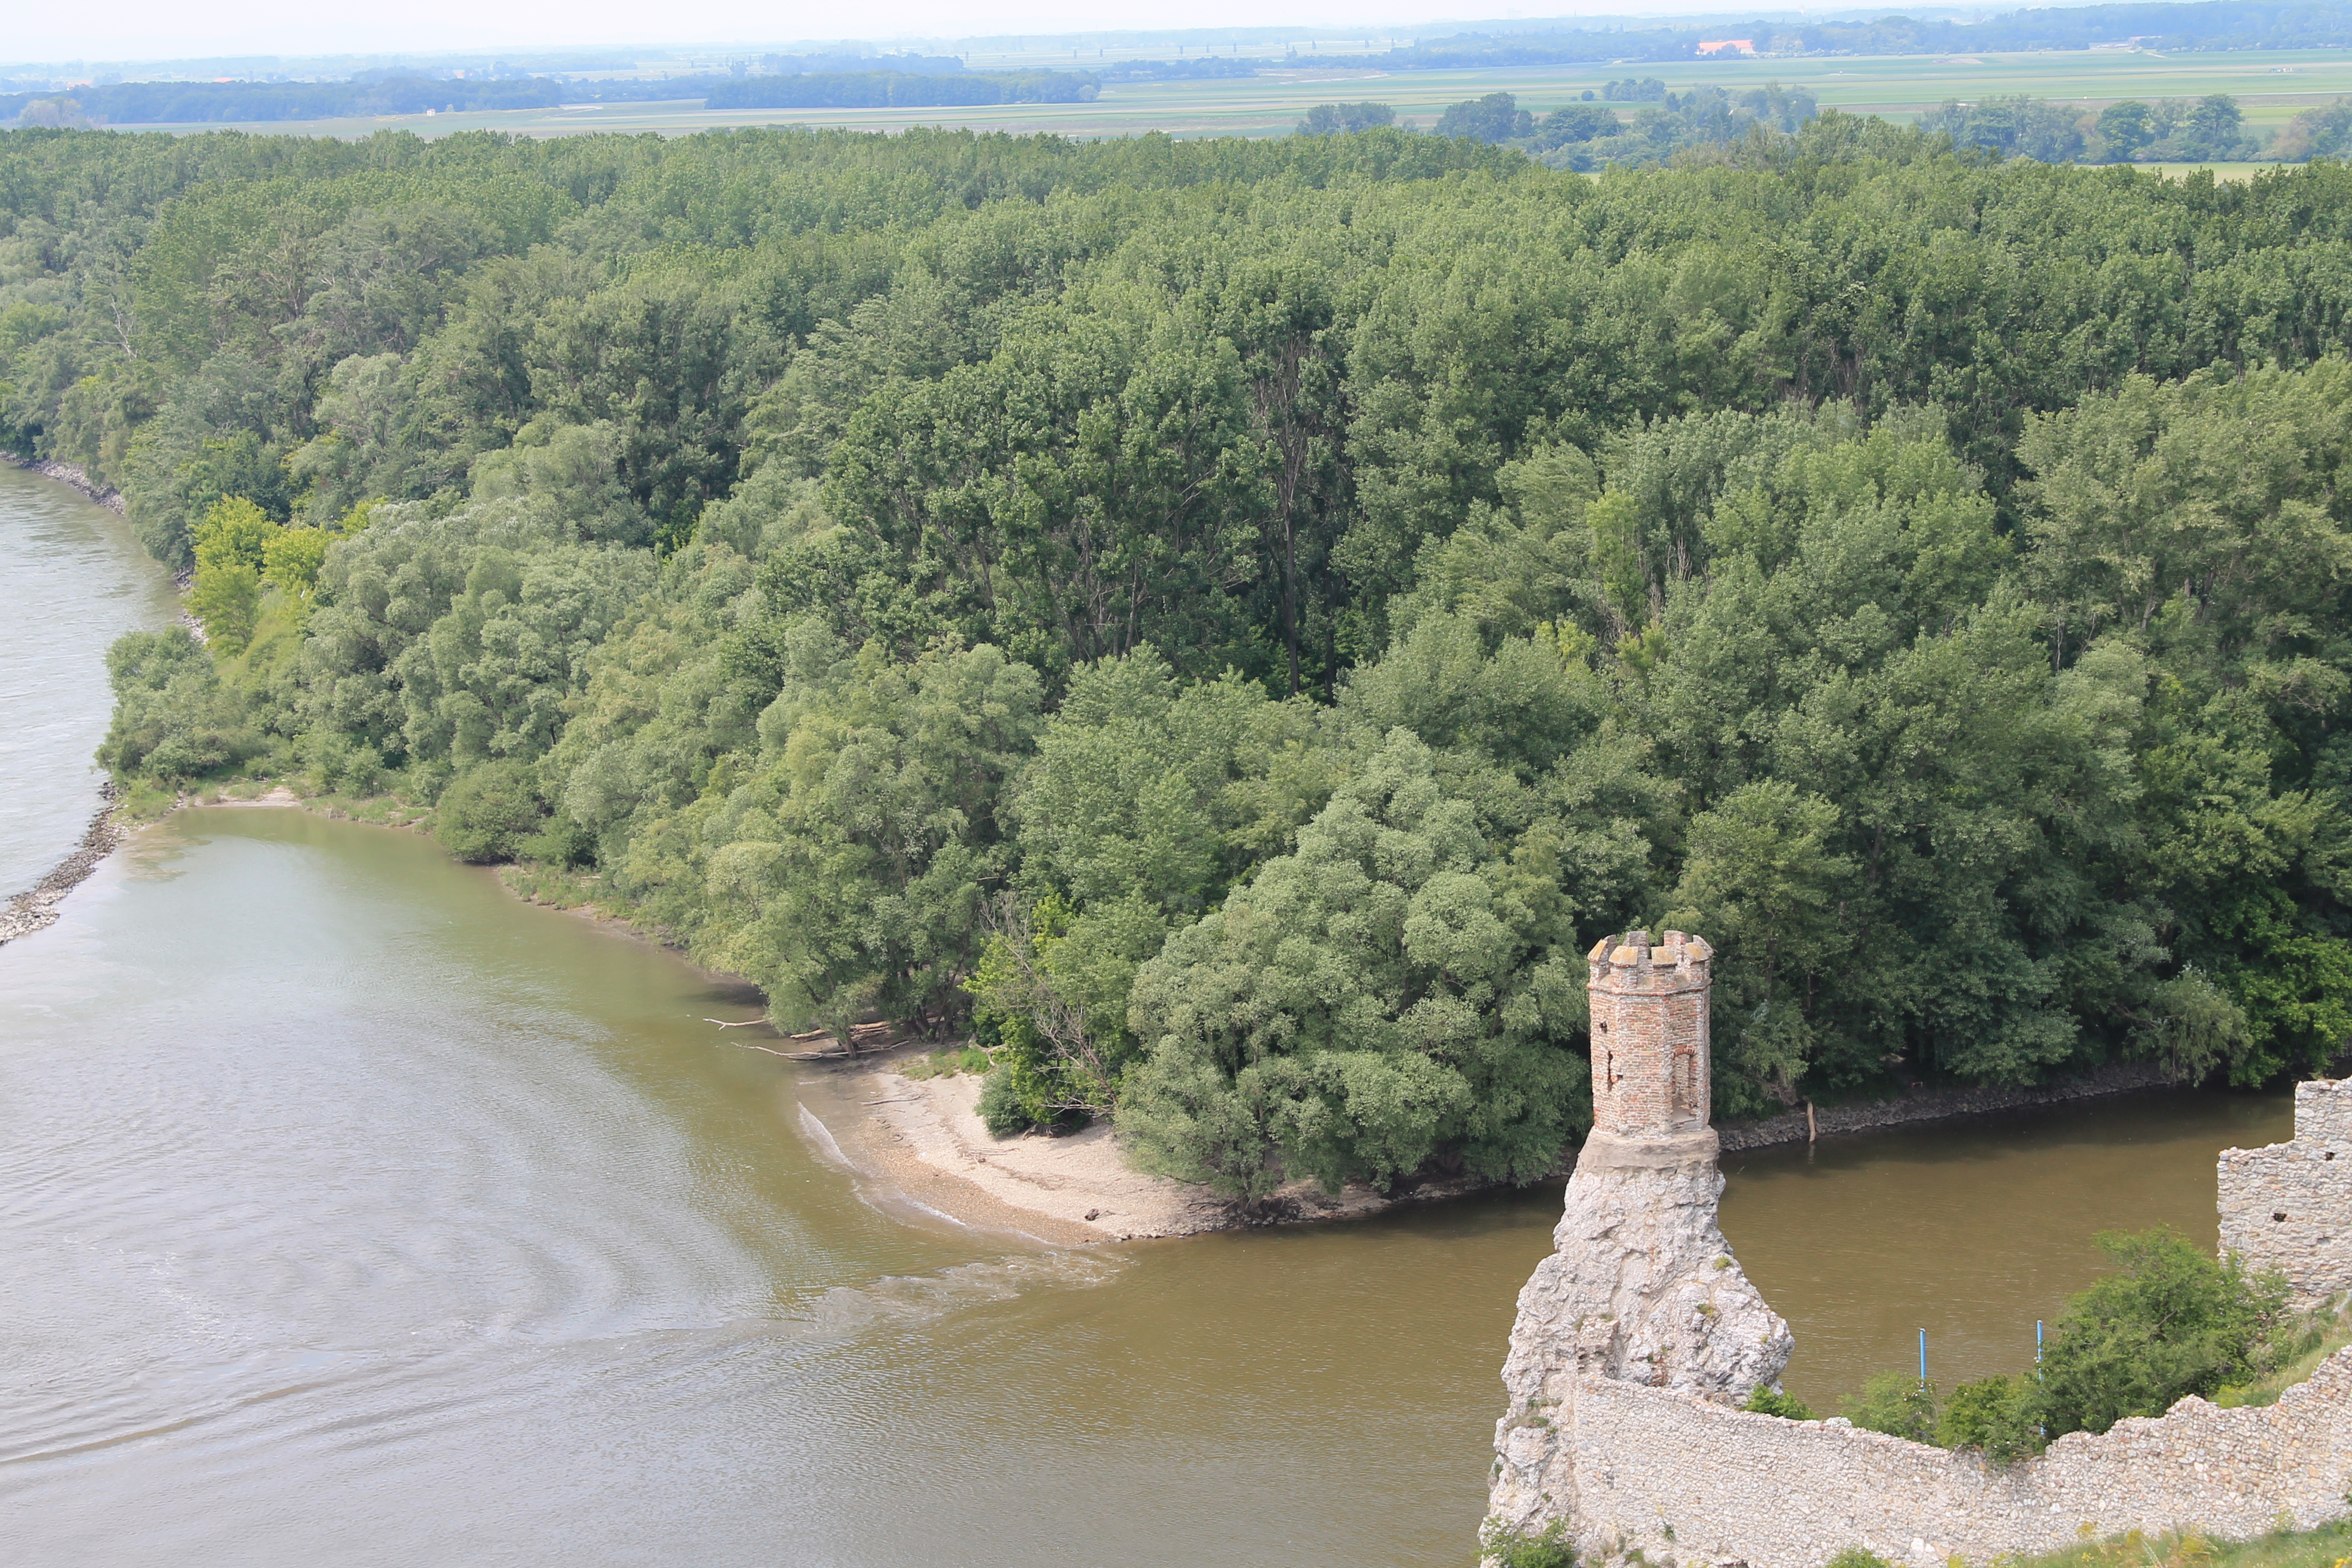 View from Devin Castle ruins